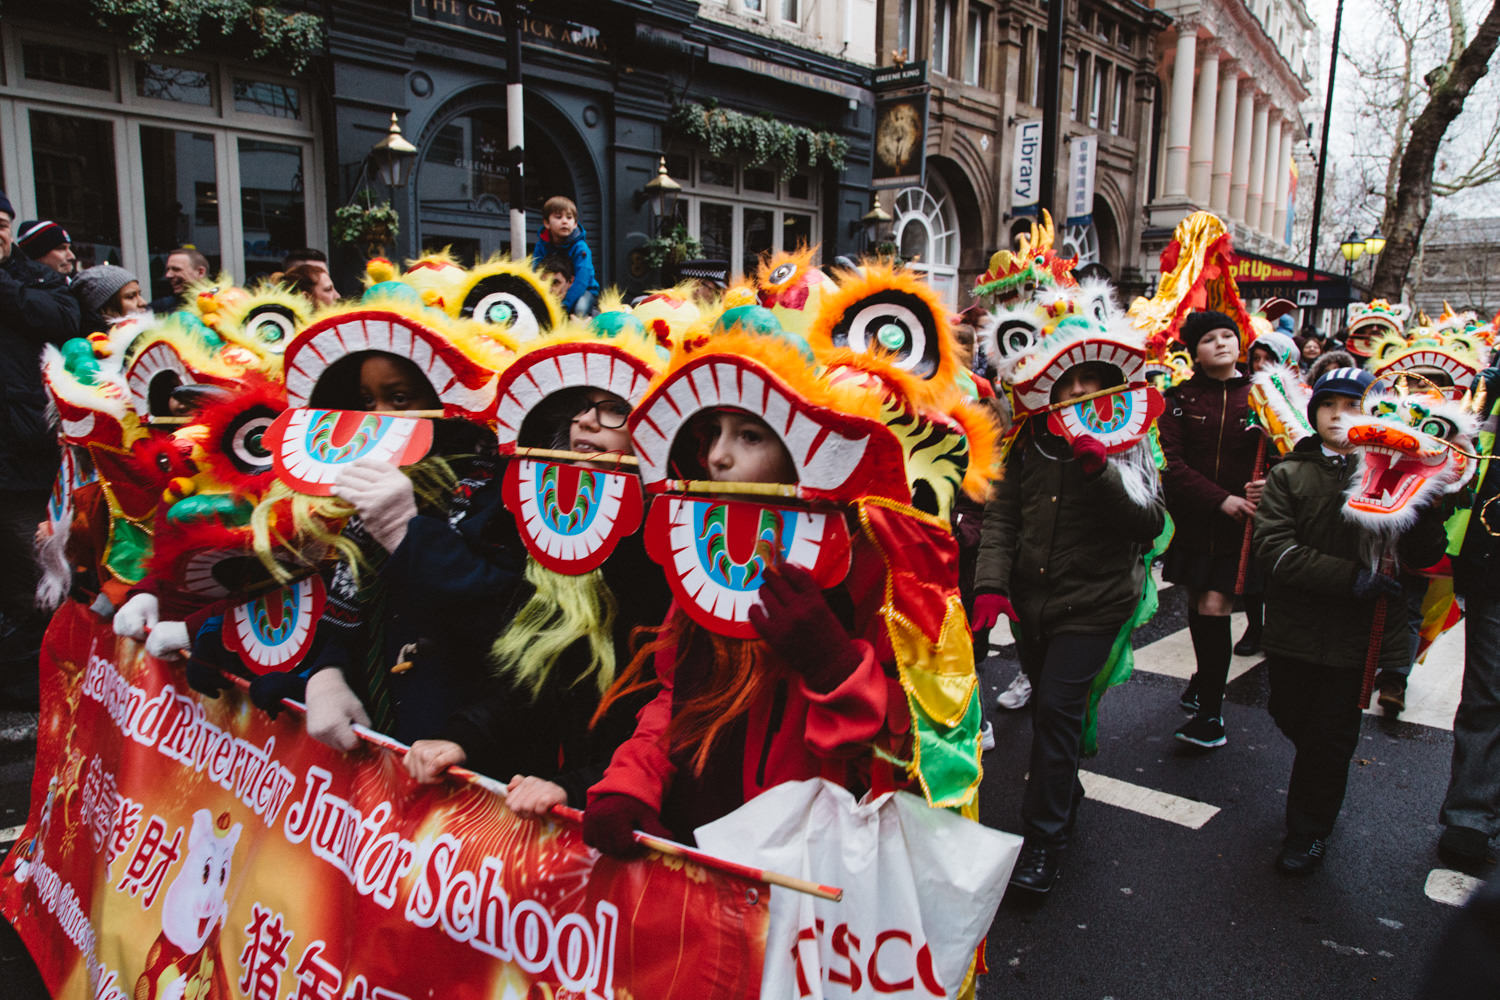 Children in lion's heads during the Chinese New Year Parade in London